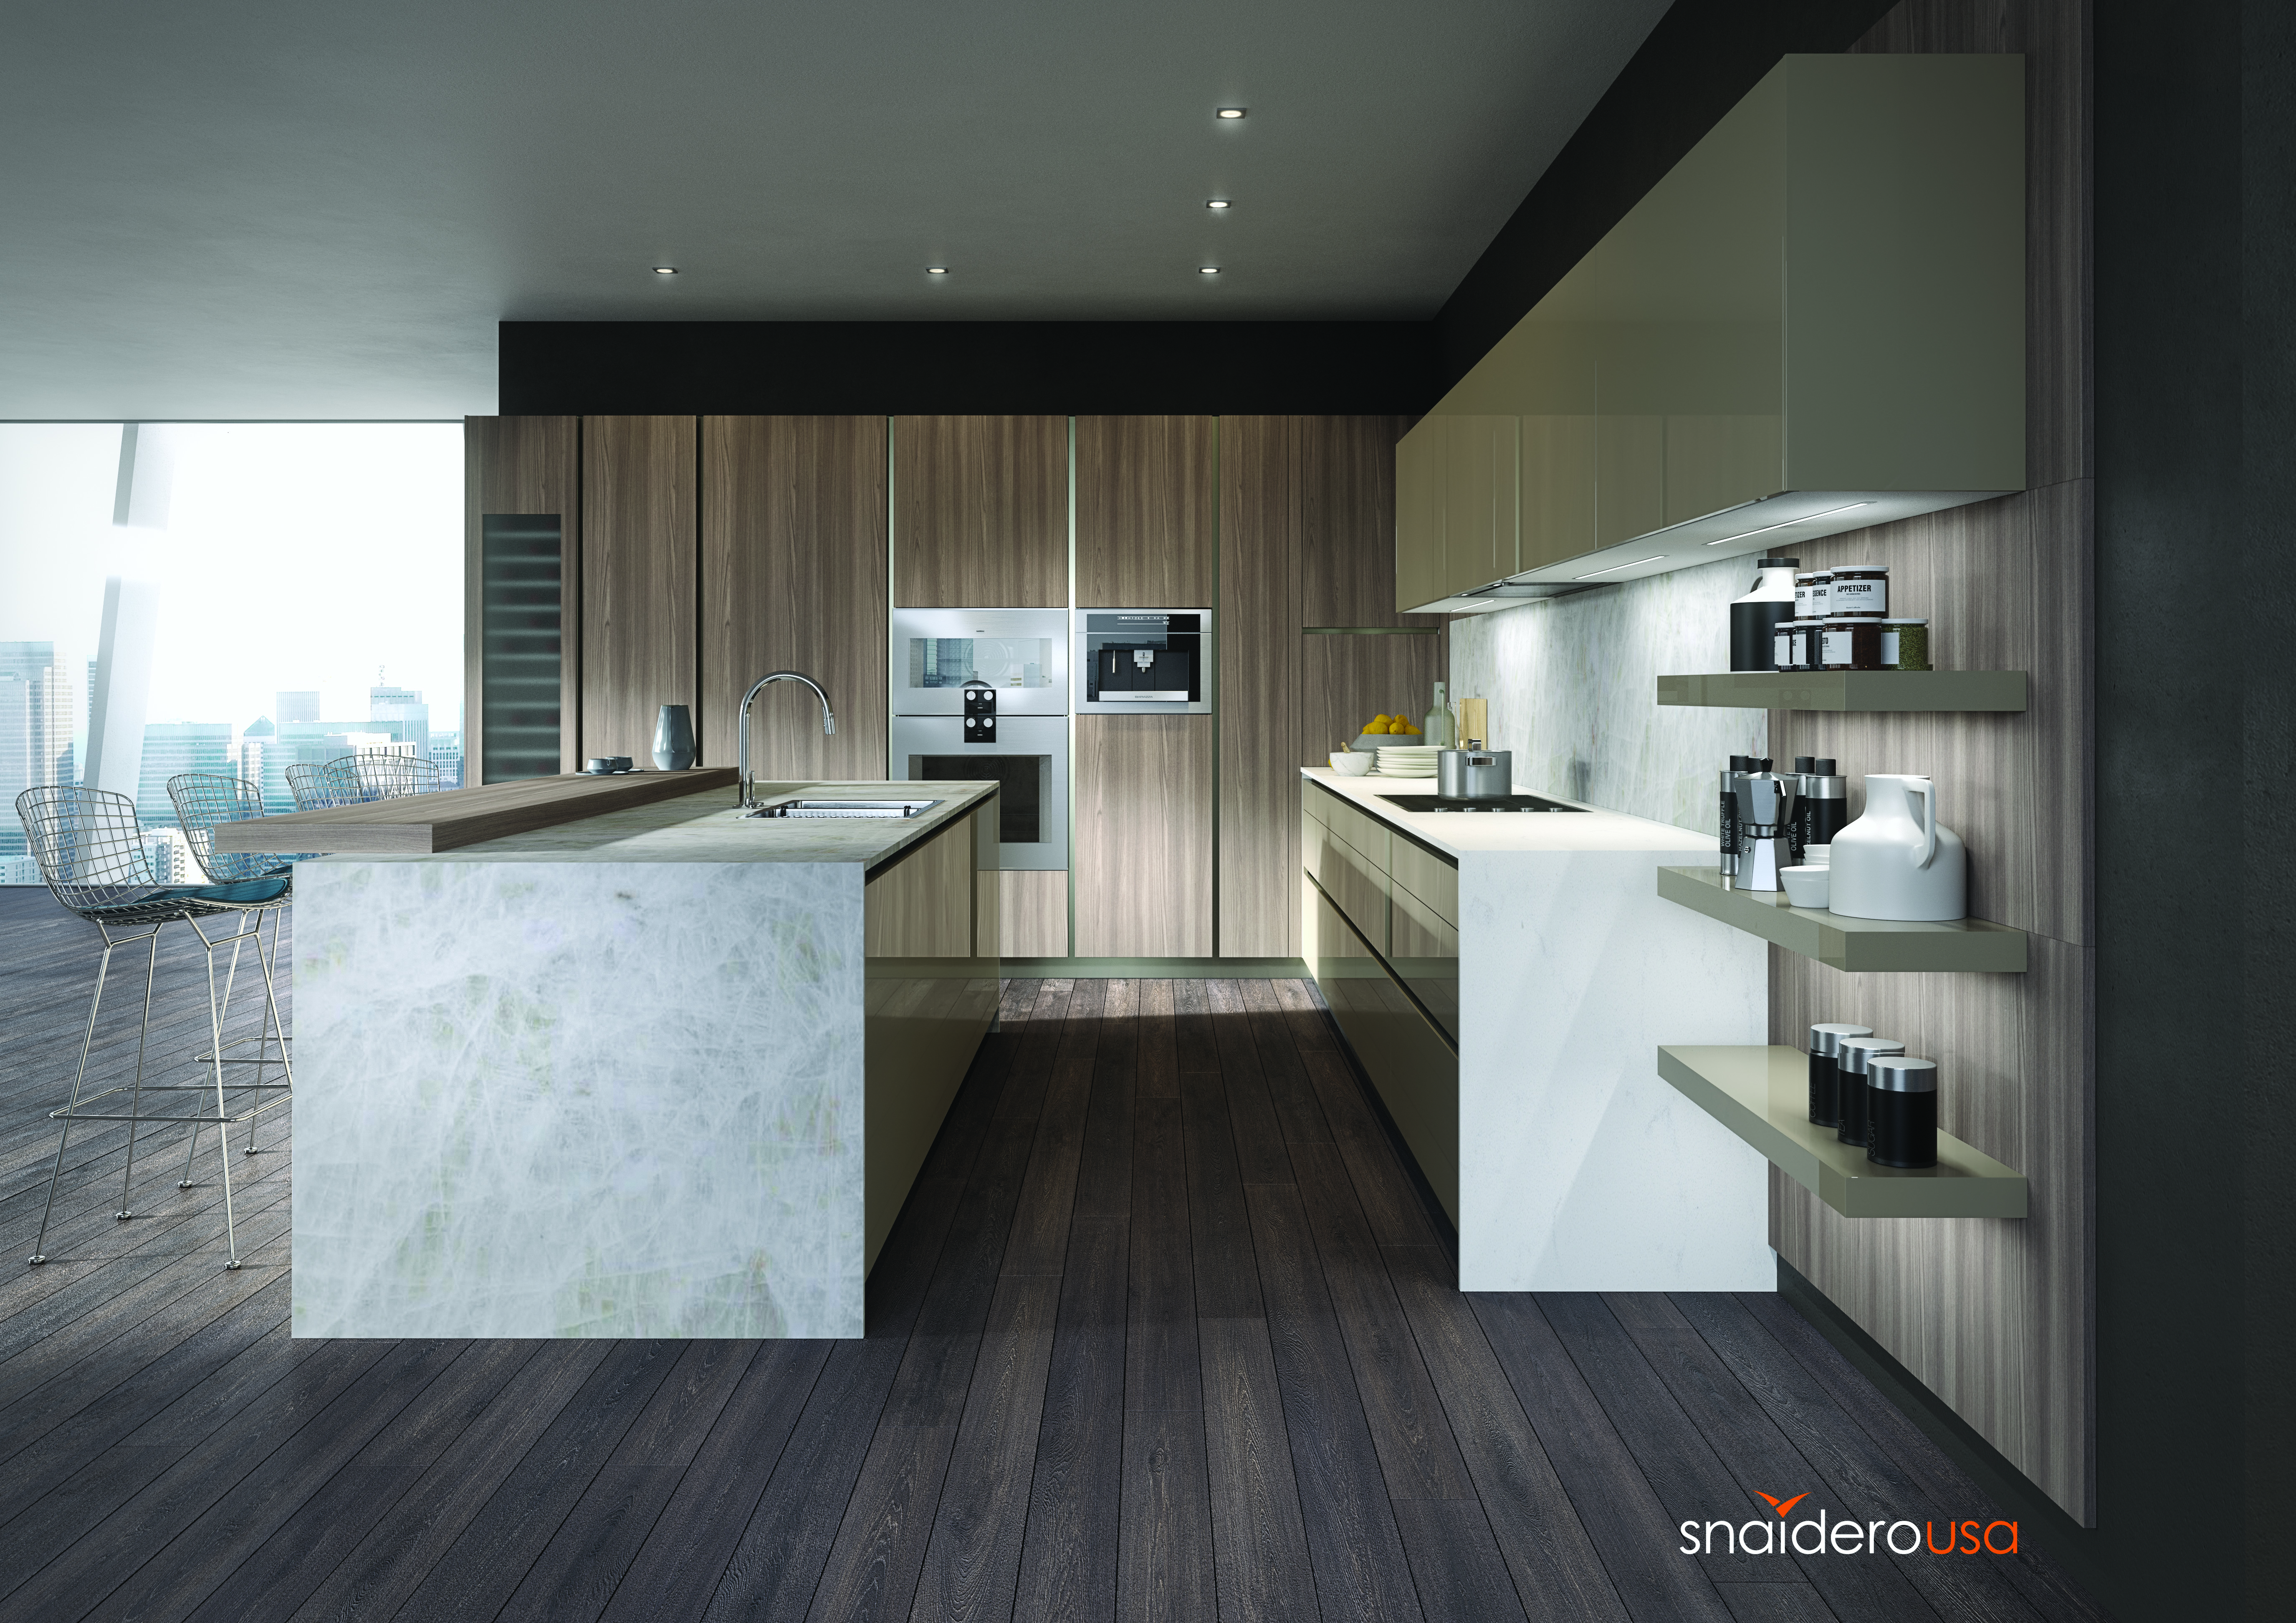 Snaidero USA Commissioned As The Kitchen Bath Provider For Chicago 39